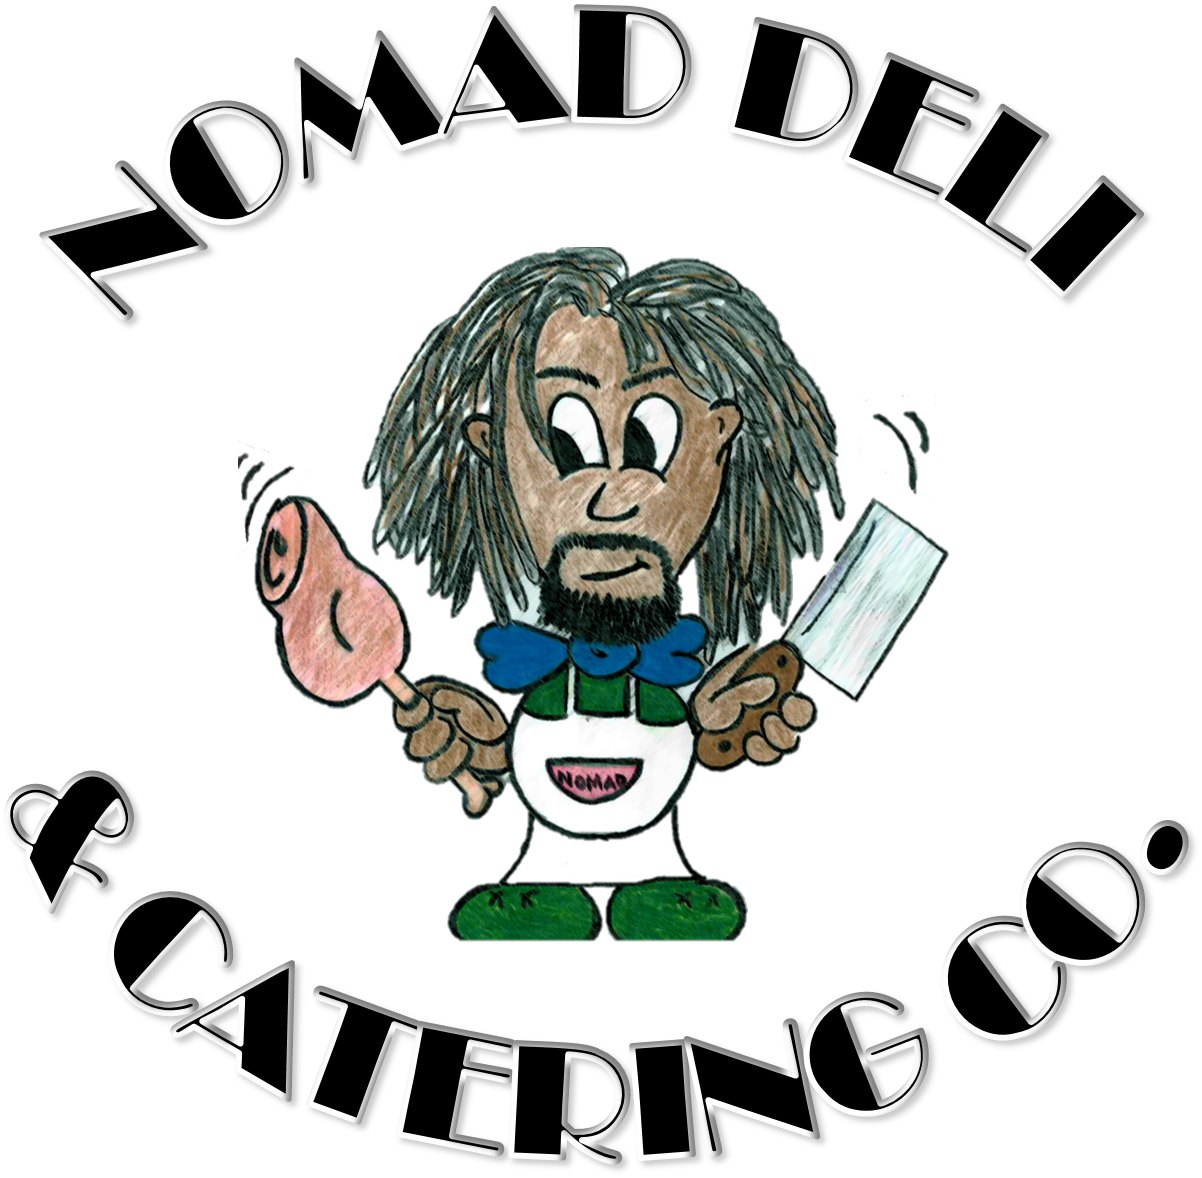 Nomad Deli & Catering Co.